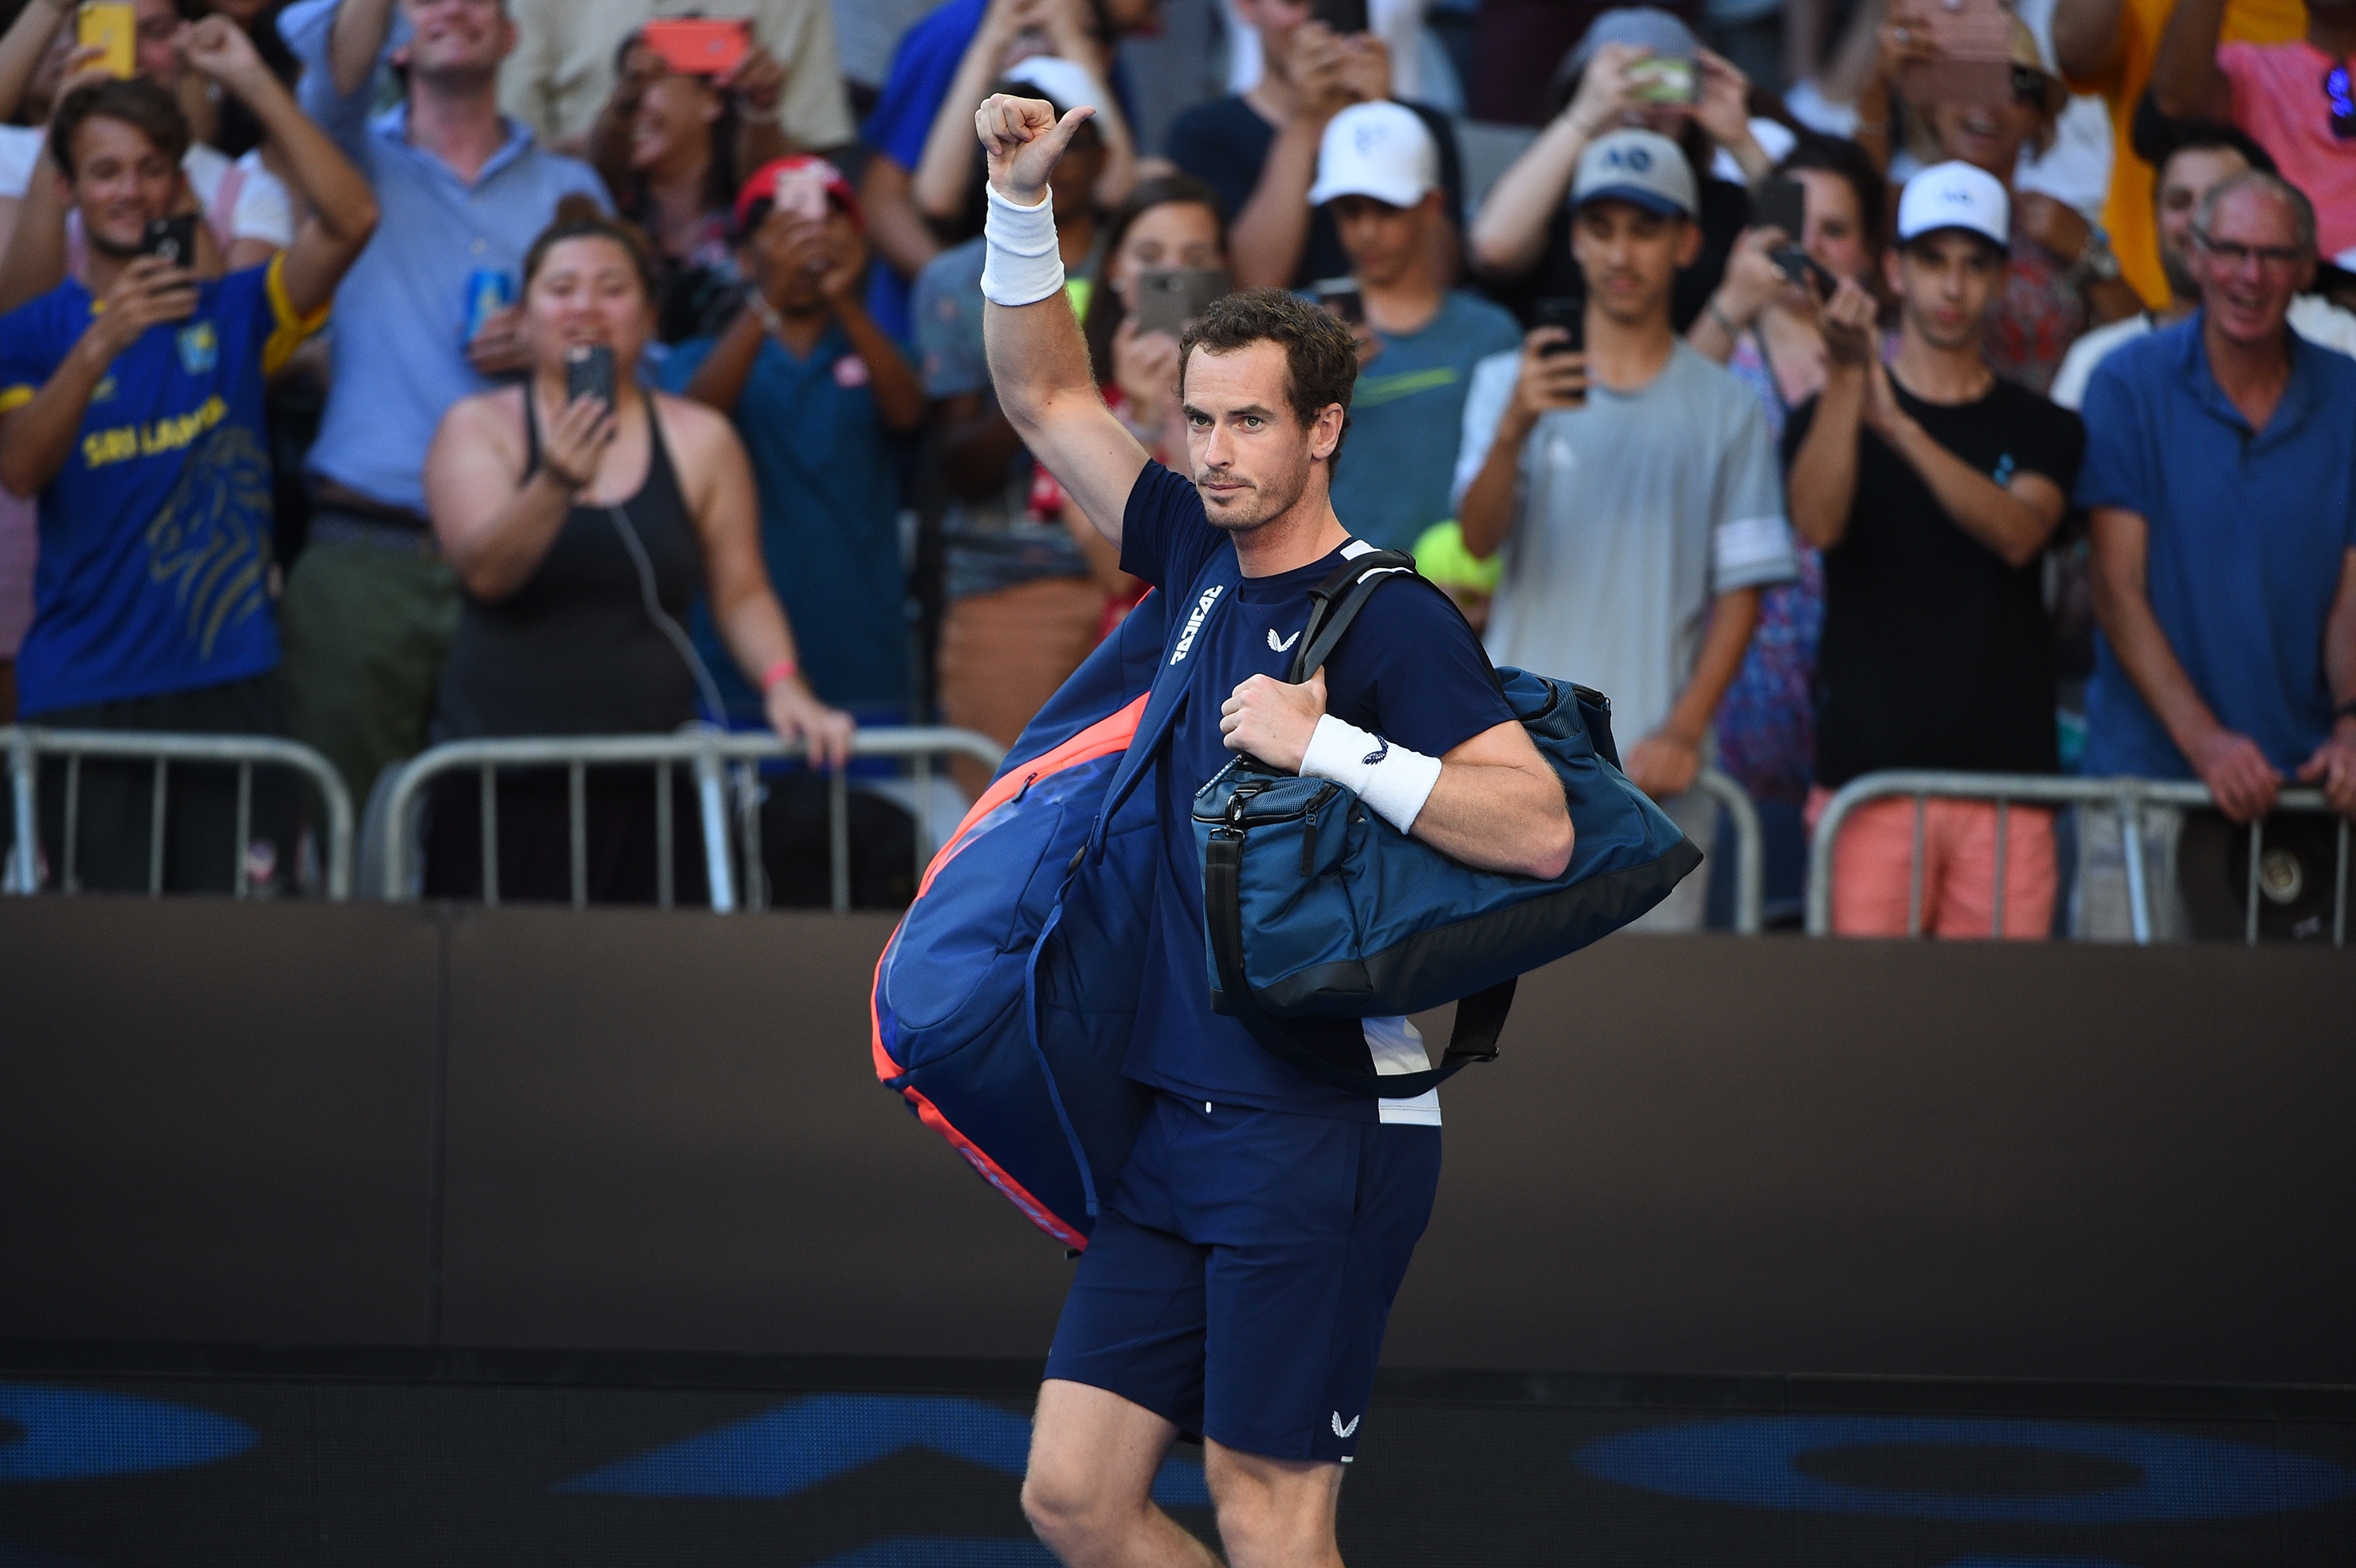 Andy Murray waving goodbye at the Australian Open 2019